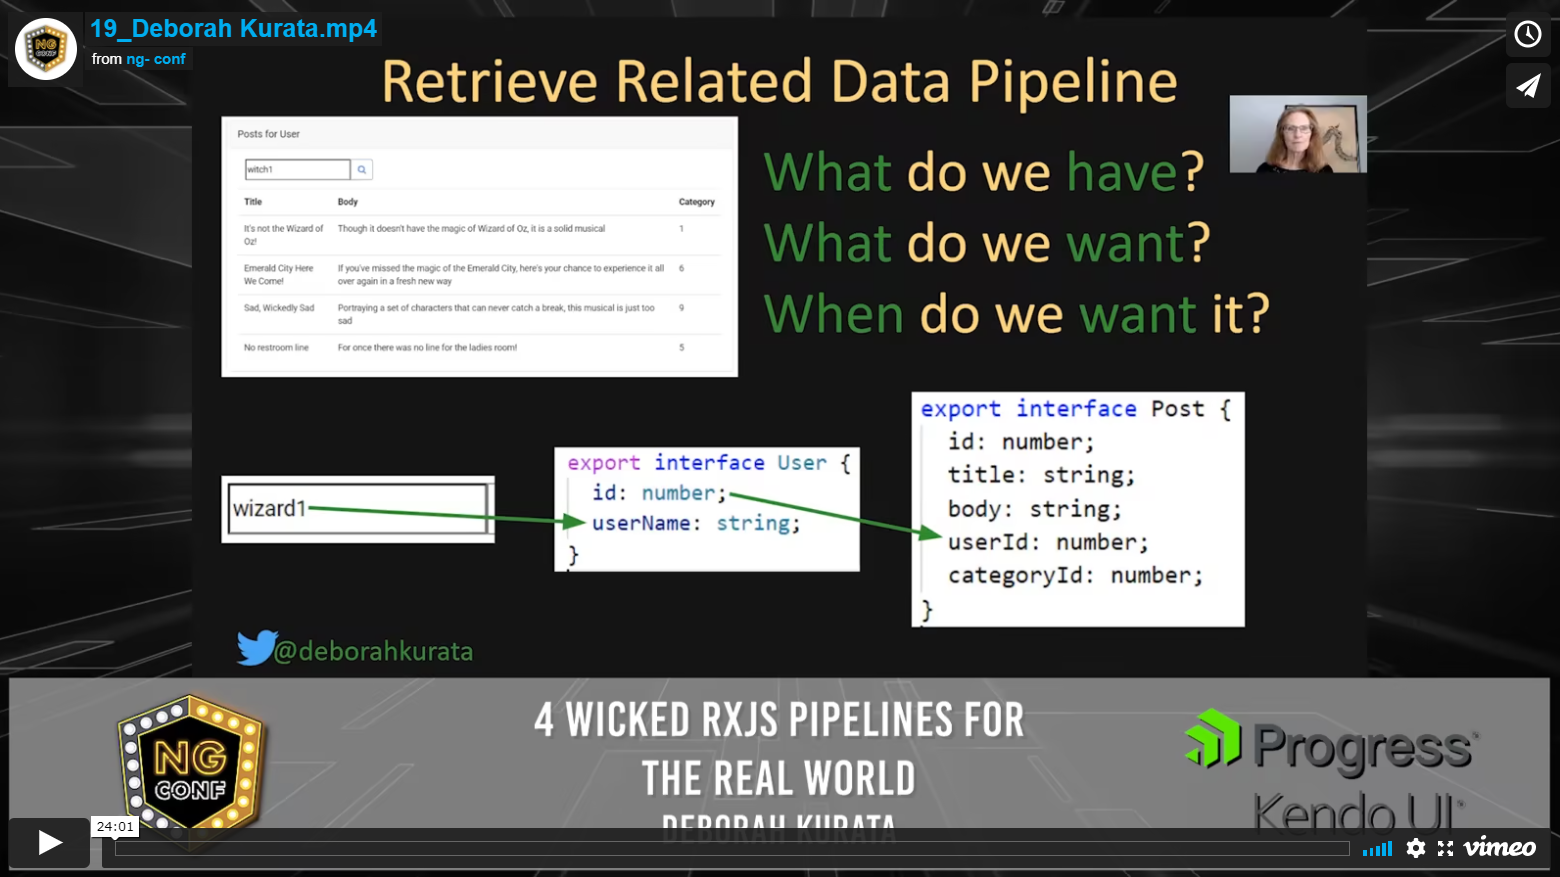 4 Wicked RxJS Pipelines for the Real World